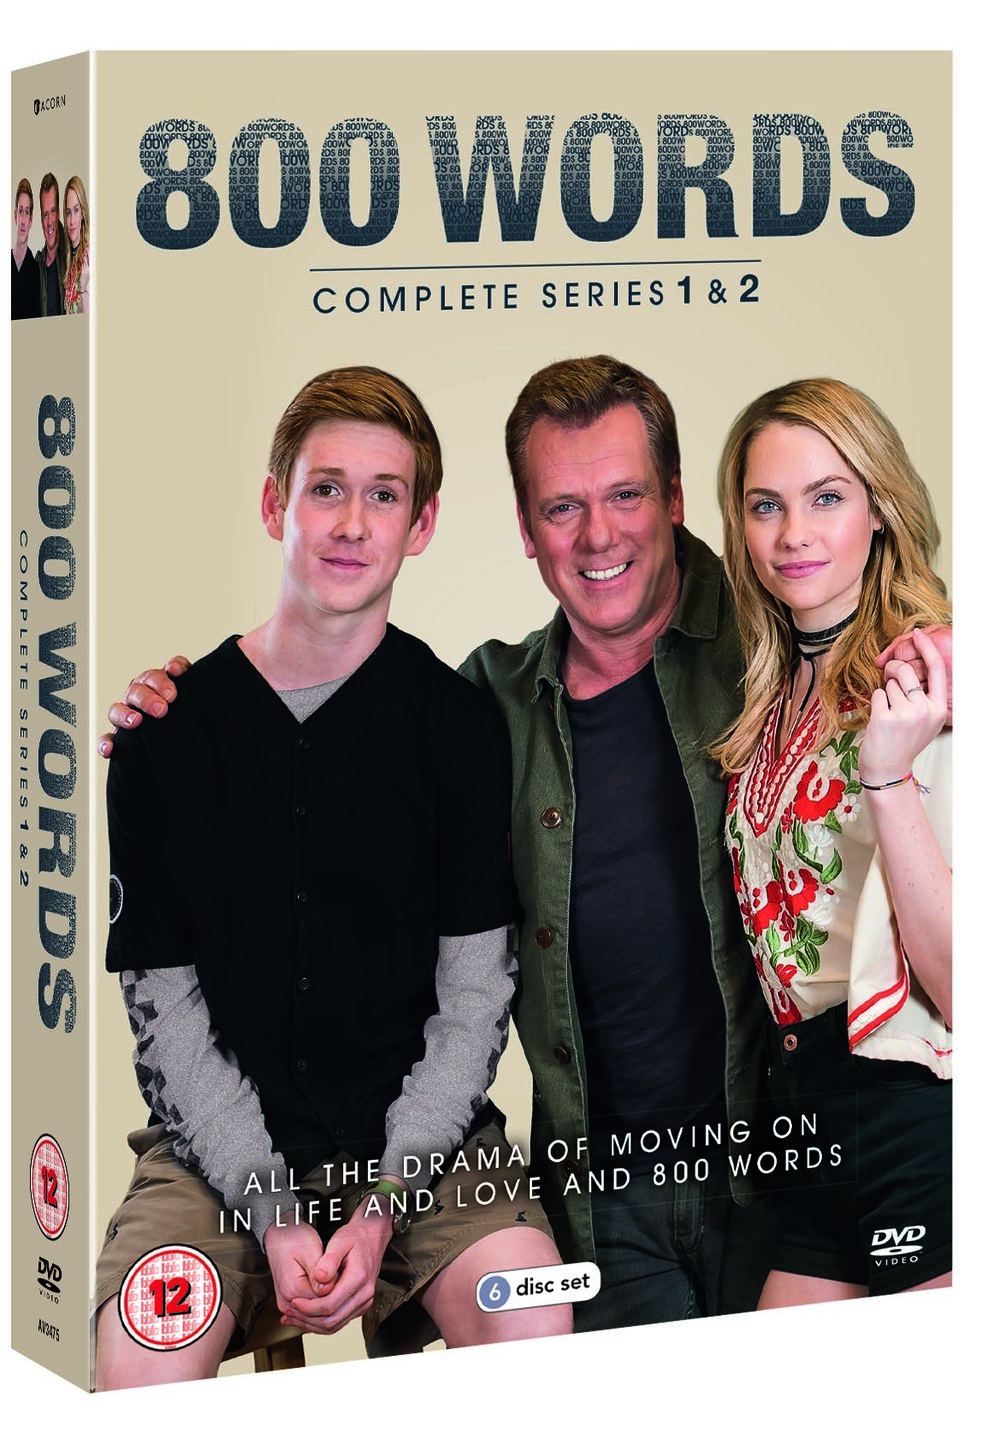 800_Words_DVD_Slipcase_Season_1and2_3D.jpg